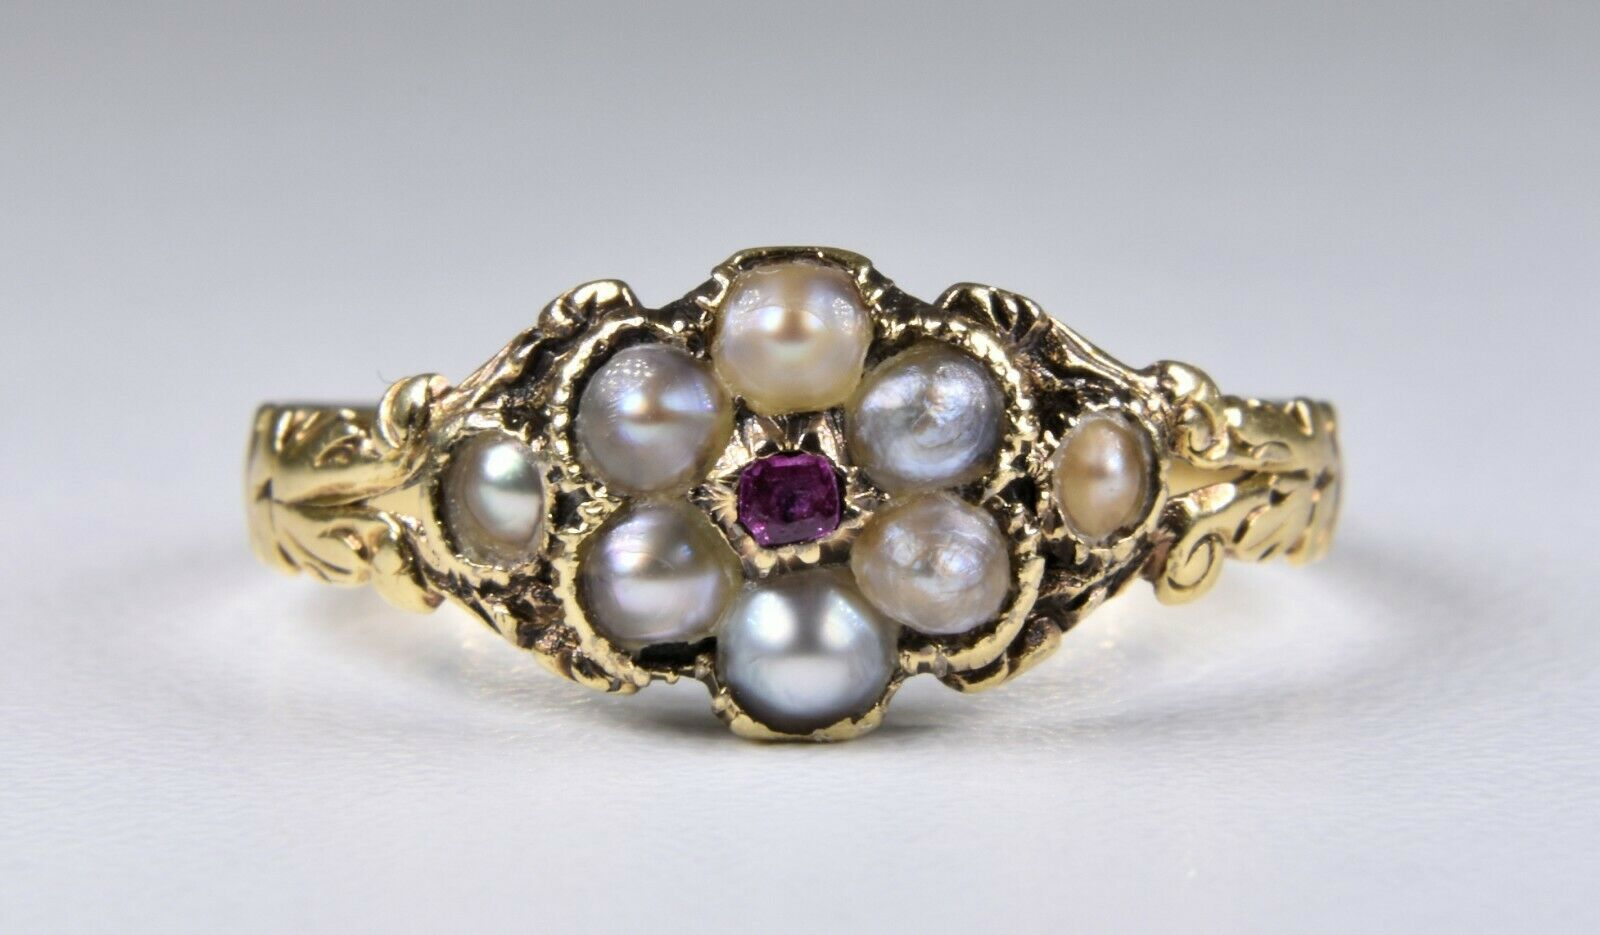 Antique Georgian 18ct gold Forget Me Not Ruby & Pearl Memorial Ring, c1800